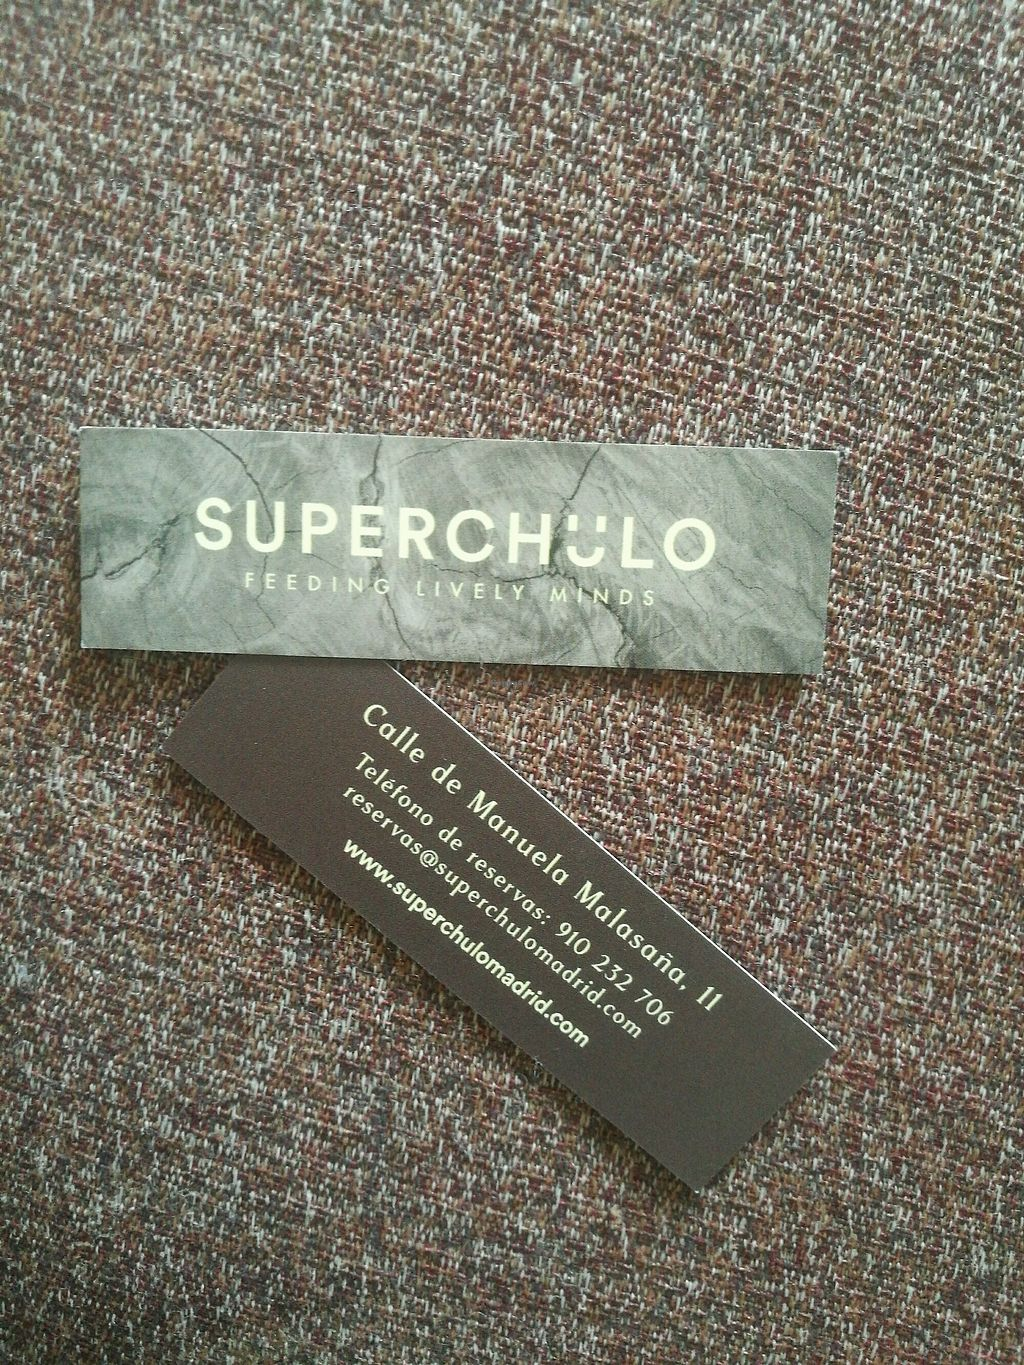 """Photo of Superchulo  by <a href=""""/members/profile/mrmaxbailey"""">mrmaxbailey</a> <br/>feed your mind <br/> December 3, 2017  - <a href='/contact/abuse/image/97861/331929'>Report</a>"""